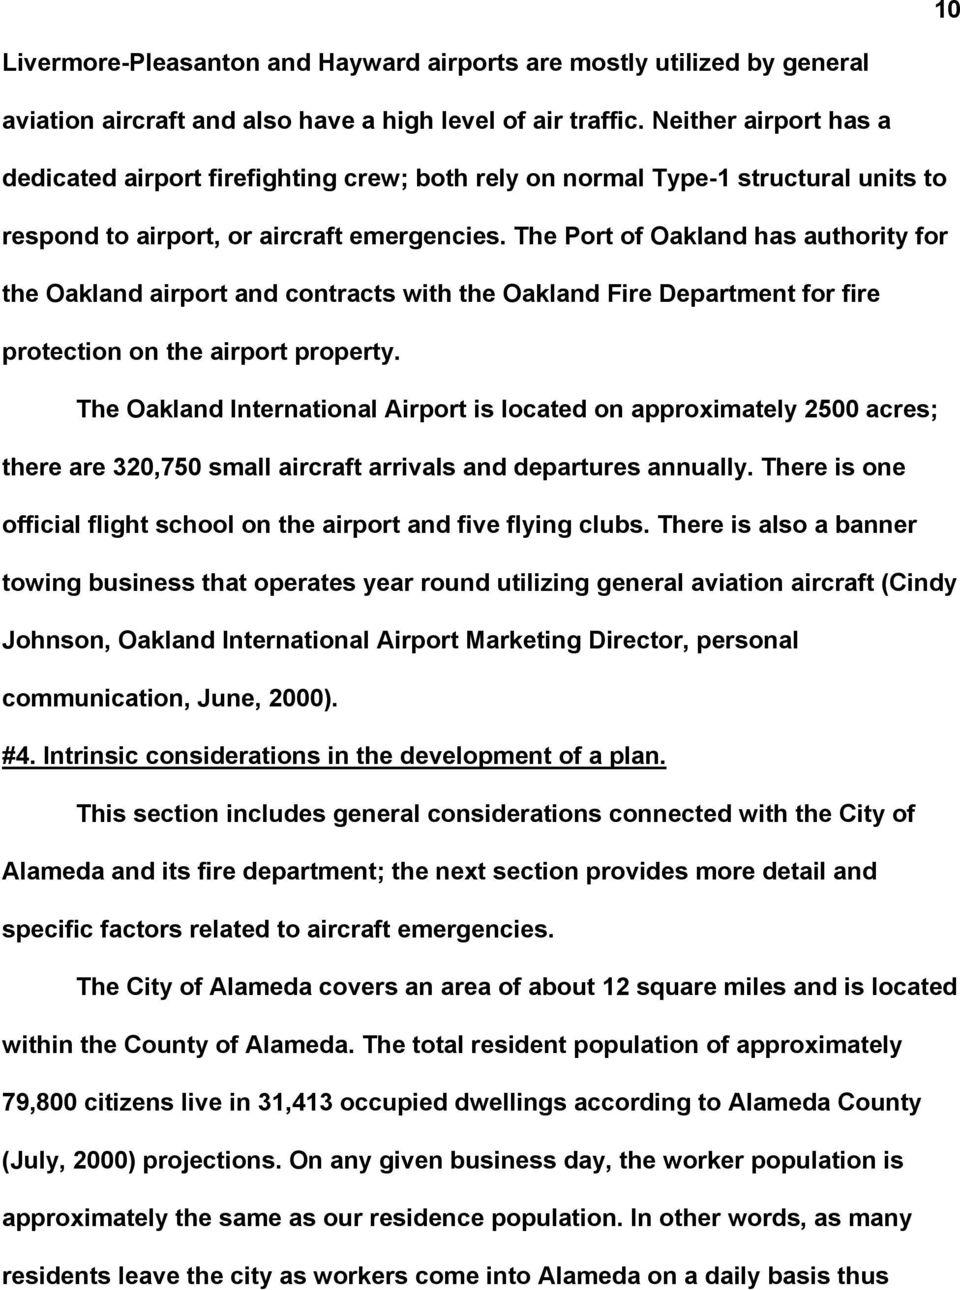 The Port of Oakland has authority for the Oakland airport and contracts with the Oakland Fire Department for fire protection on the airport property.